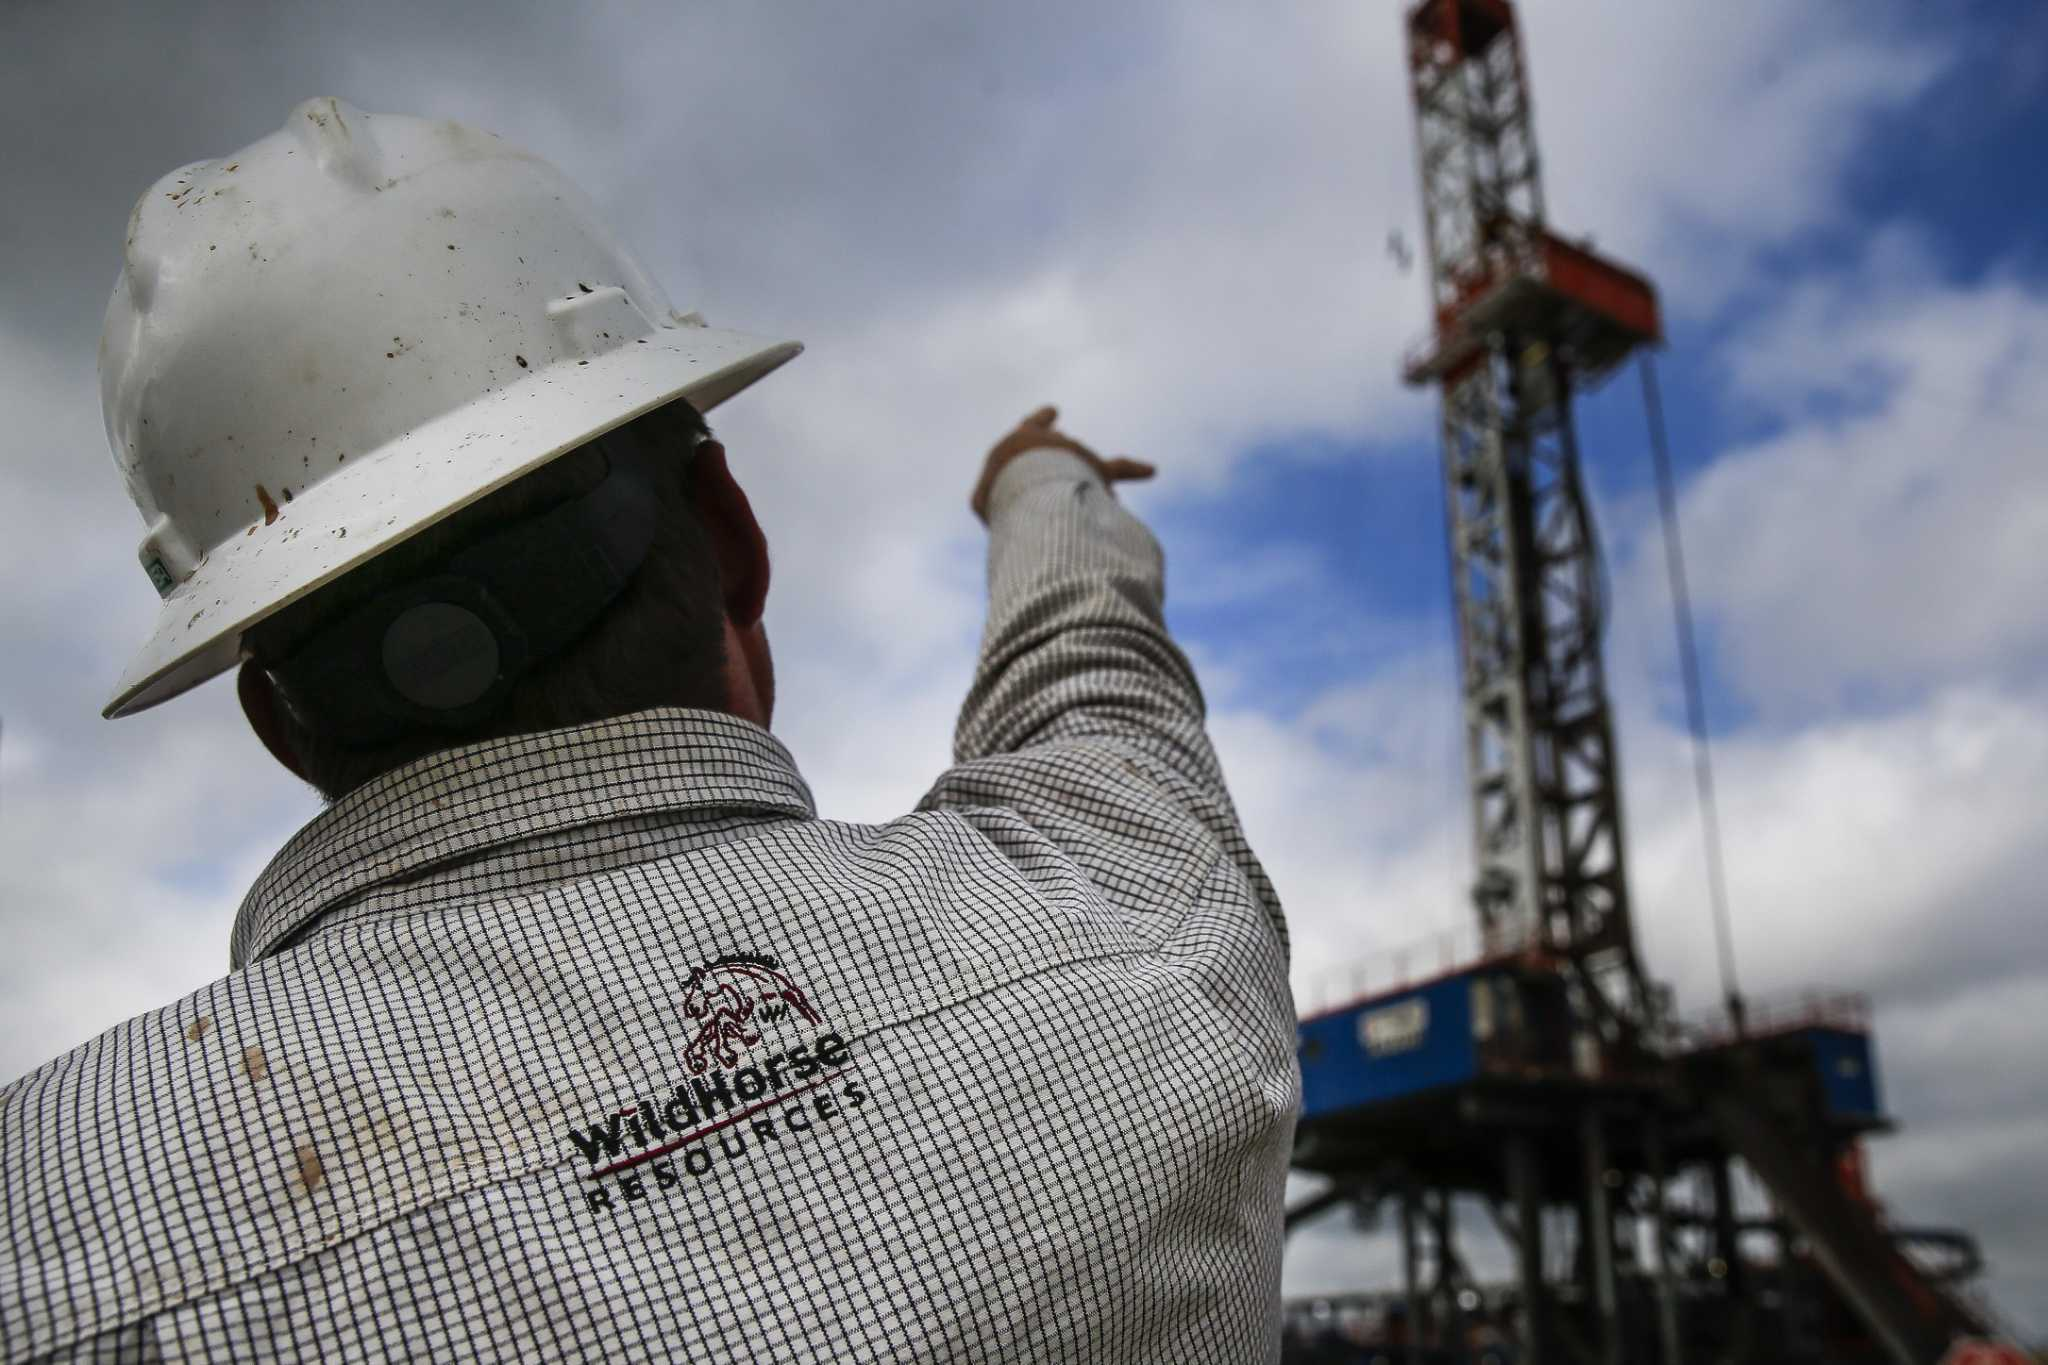 Texas leads a drilling rig count jump - Houston Chronicle